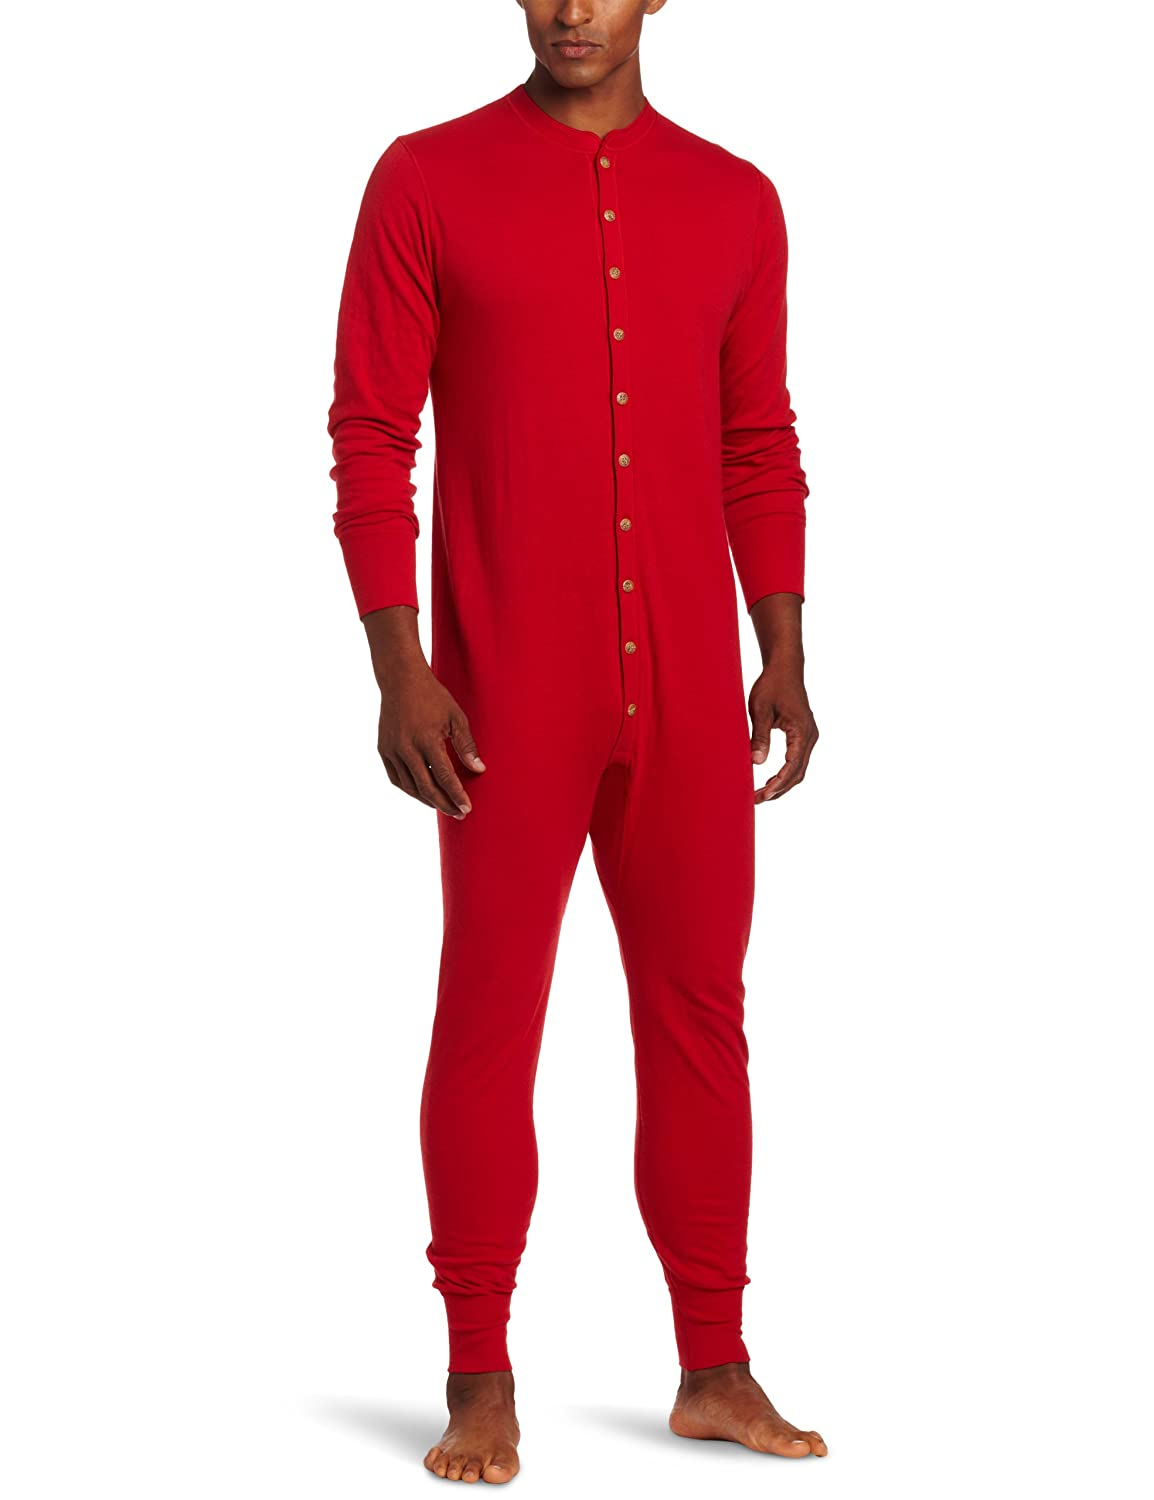 Duofold Men's Mid Weight Double-Layer Thermal Union Suit Hanesbrands - Duofold KMMU